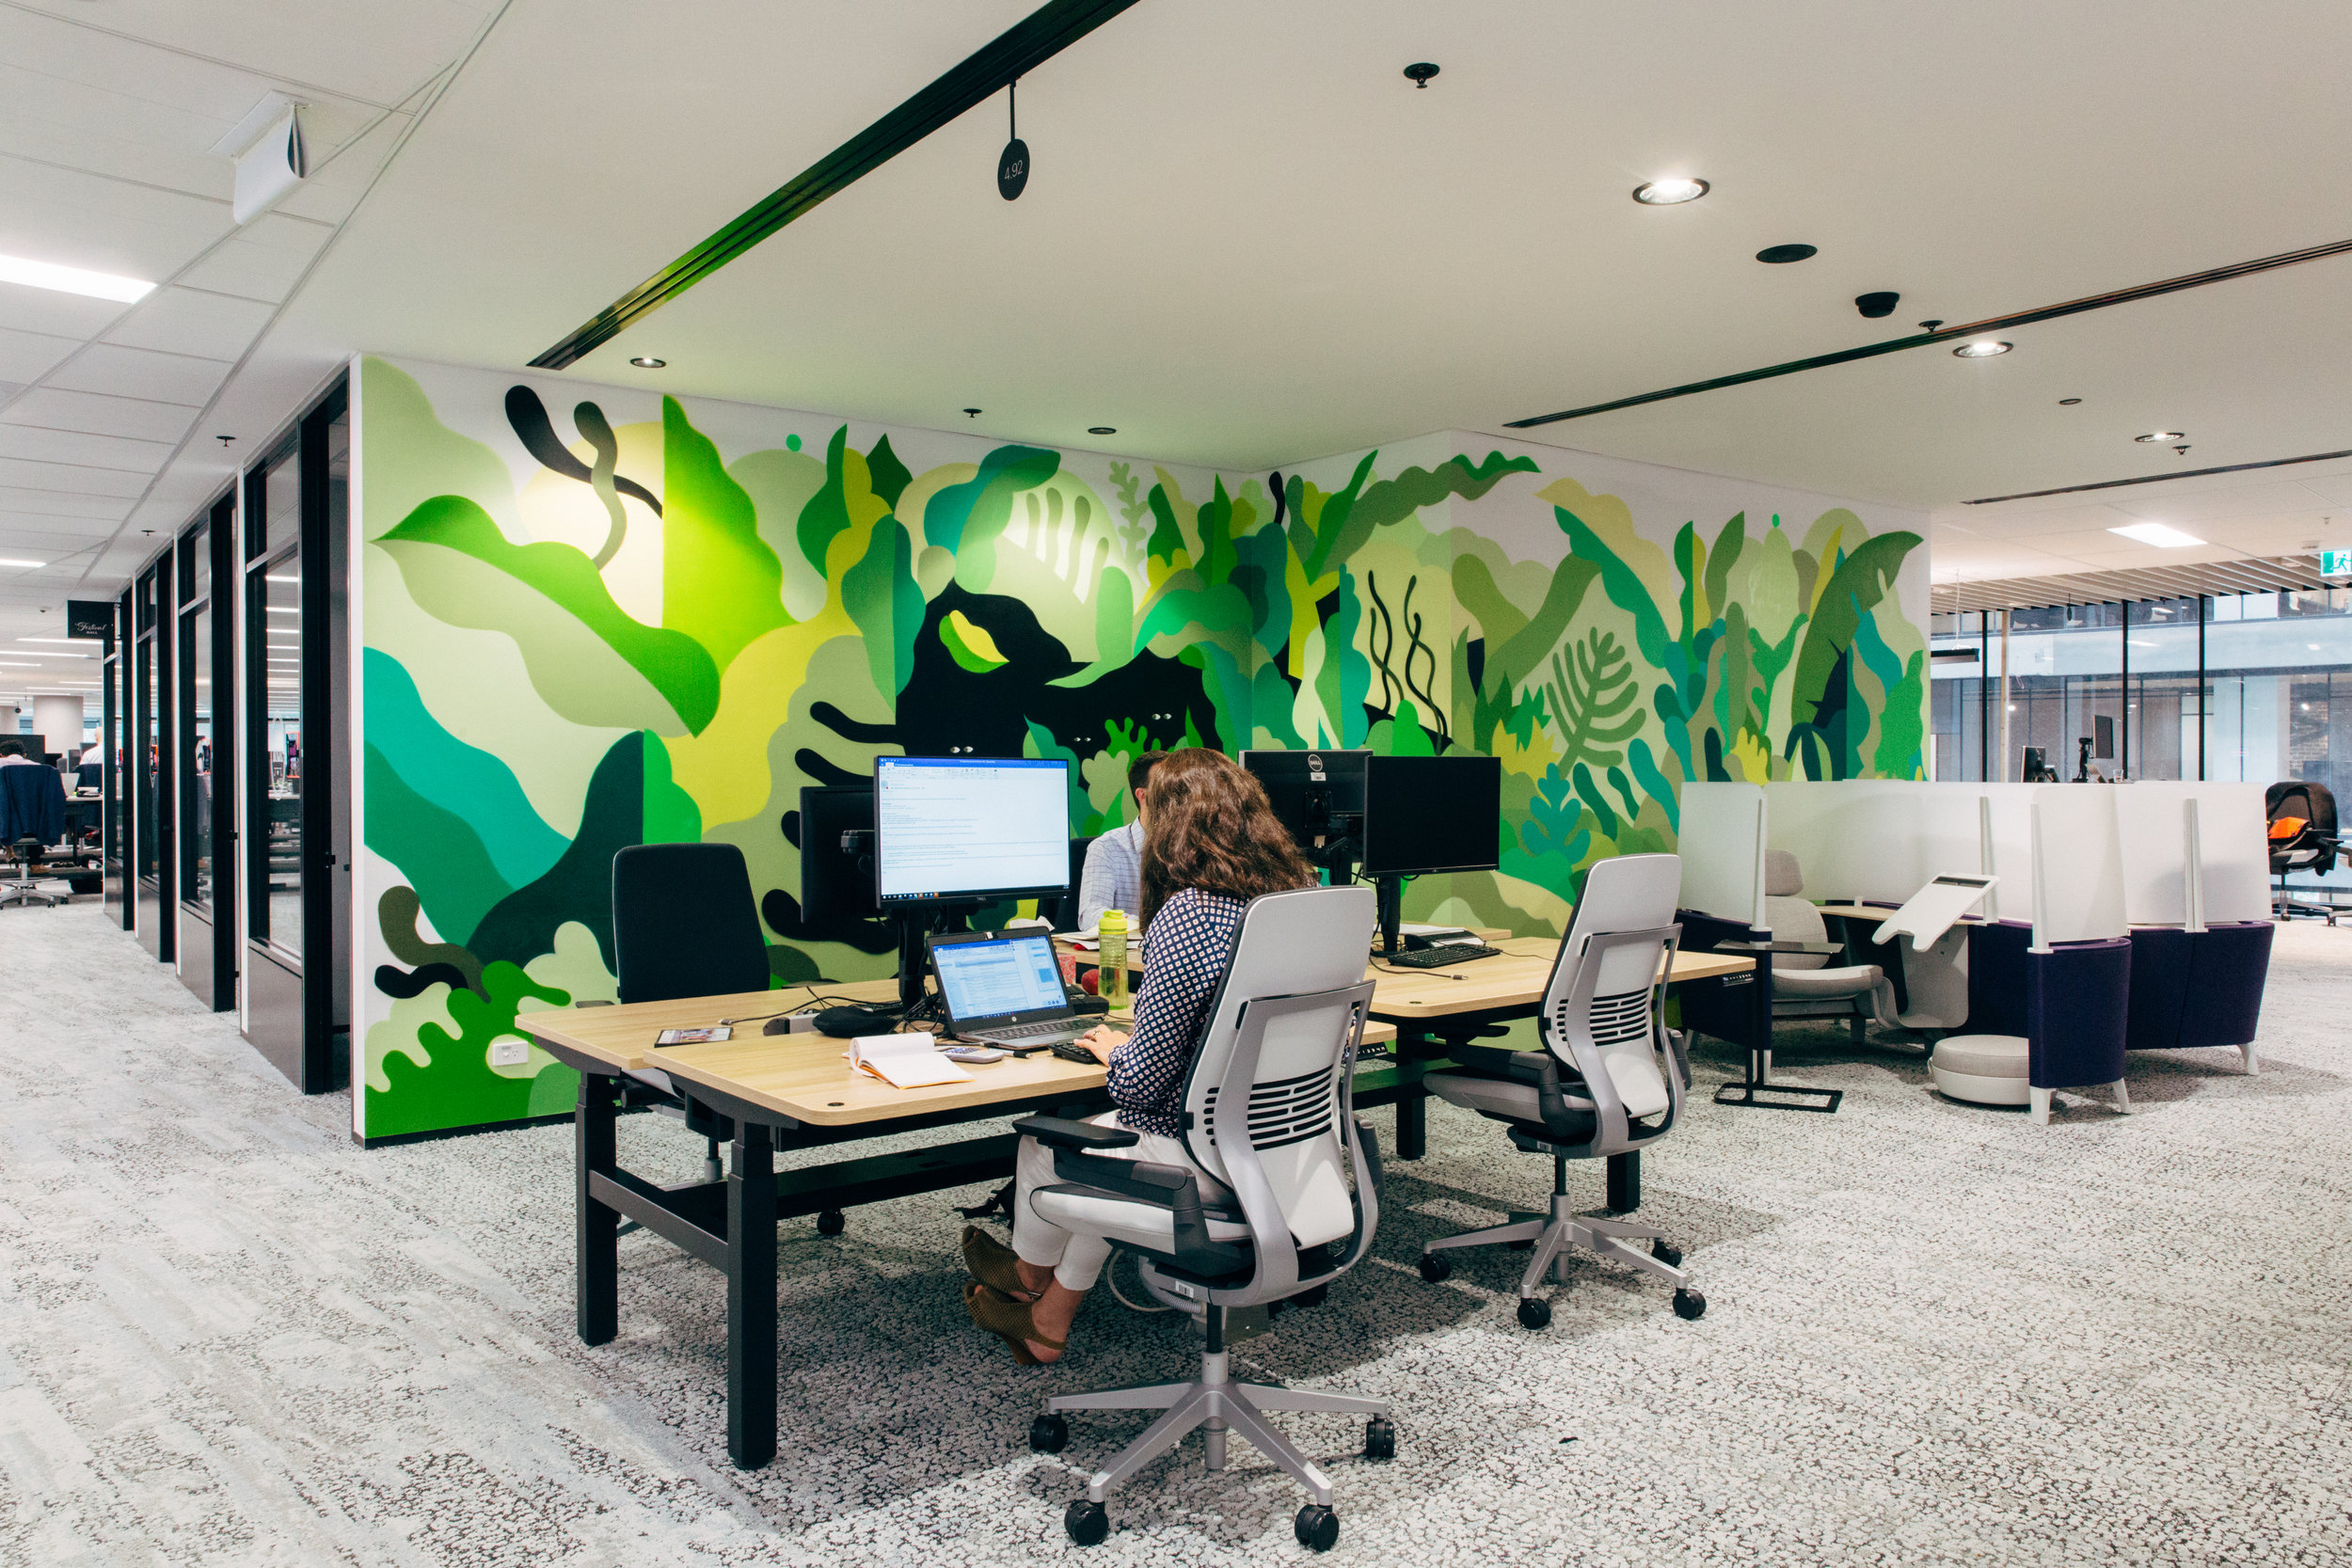 Art_Pharmacy_Consulting_Accenture_Melbourne_Murals12.jpg